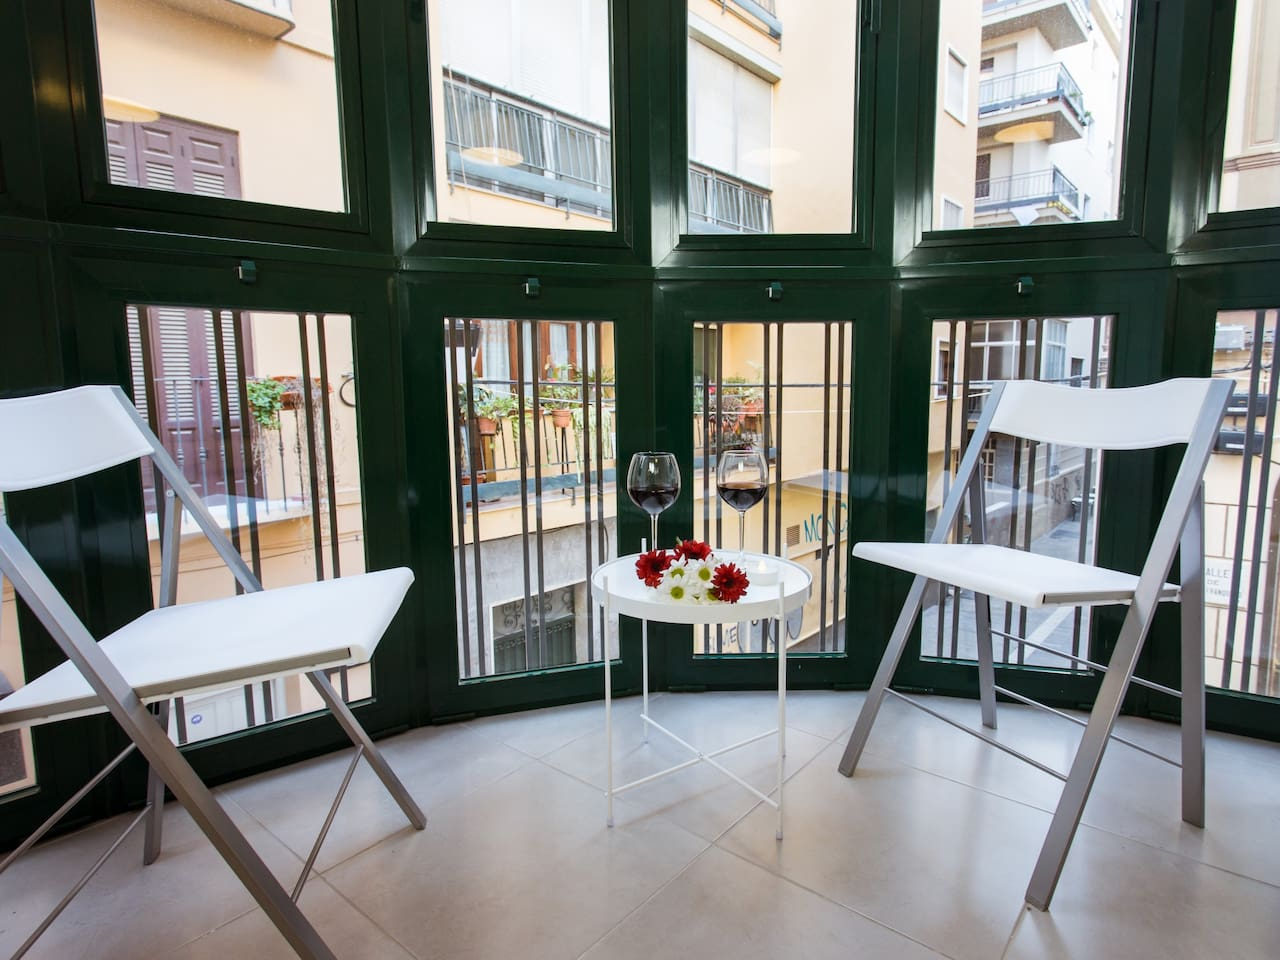 Flamenco 2. 2 bedroom apartment near the Picasso Museum of Malaga